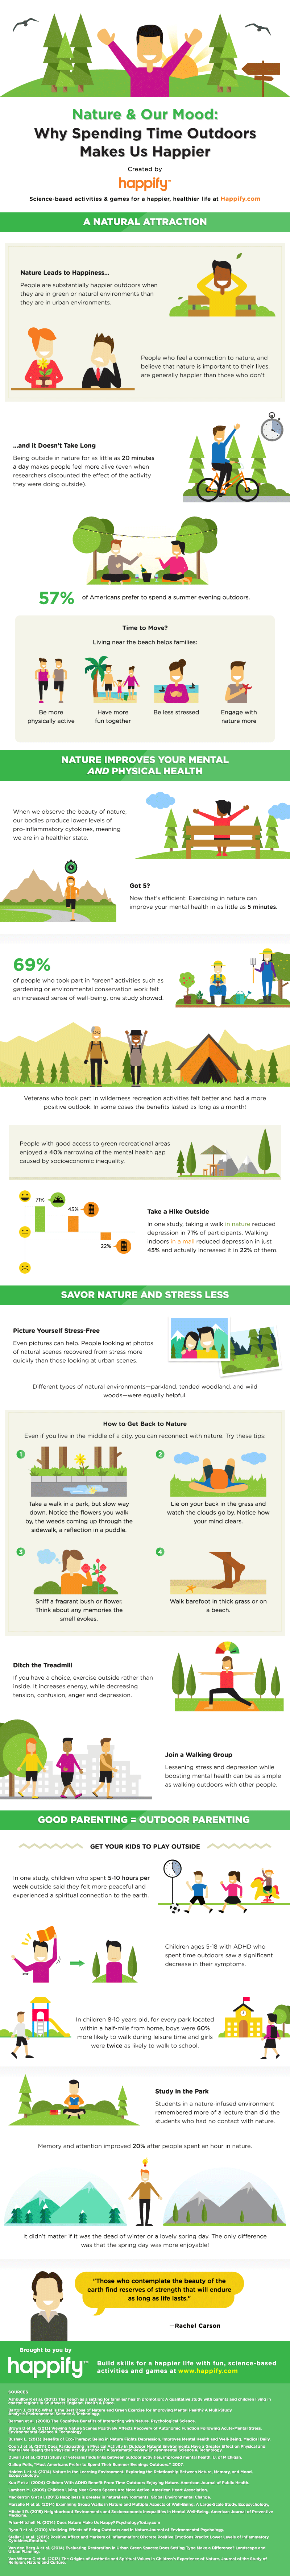 Spending time in nature helps improve happiness